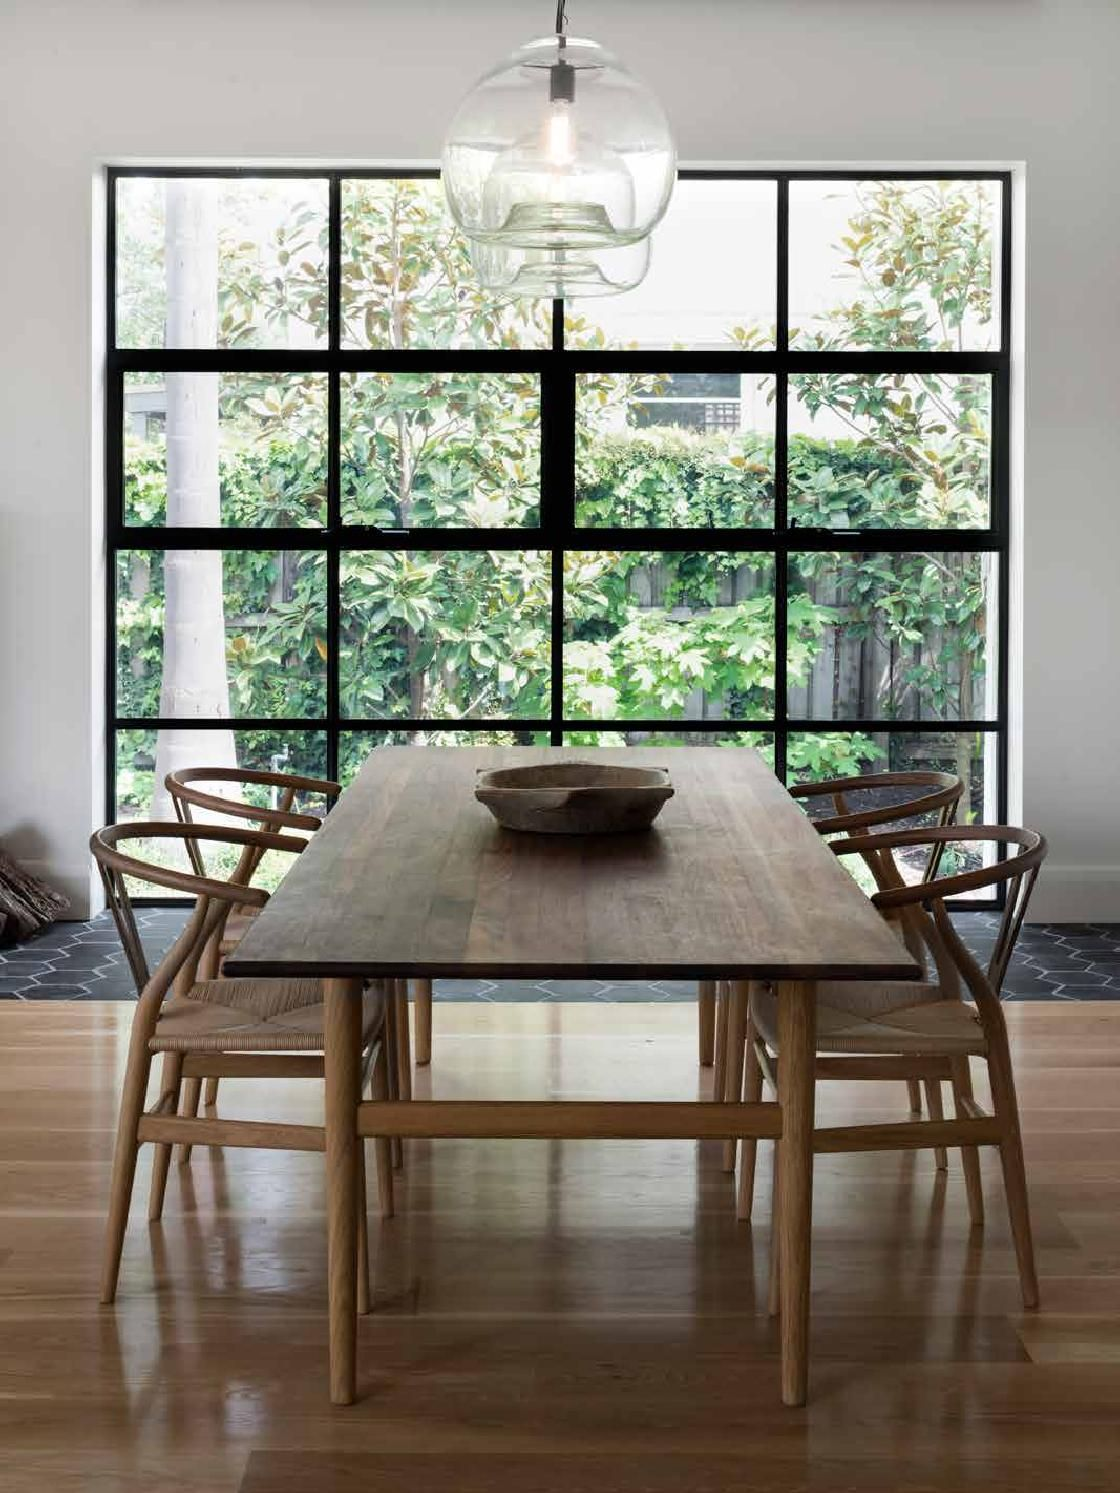 Modern rustic dining room table  Est magazine issue   HOME  Pinterest  Open window Dining